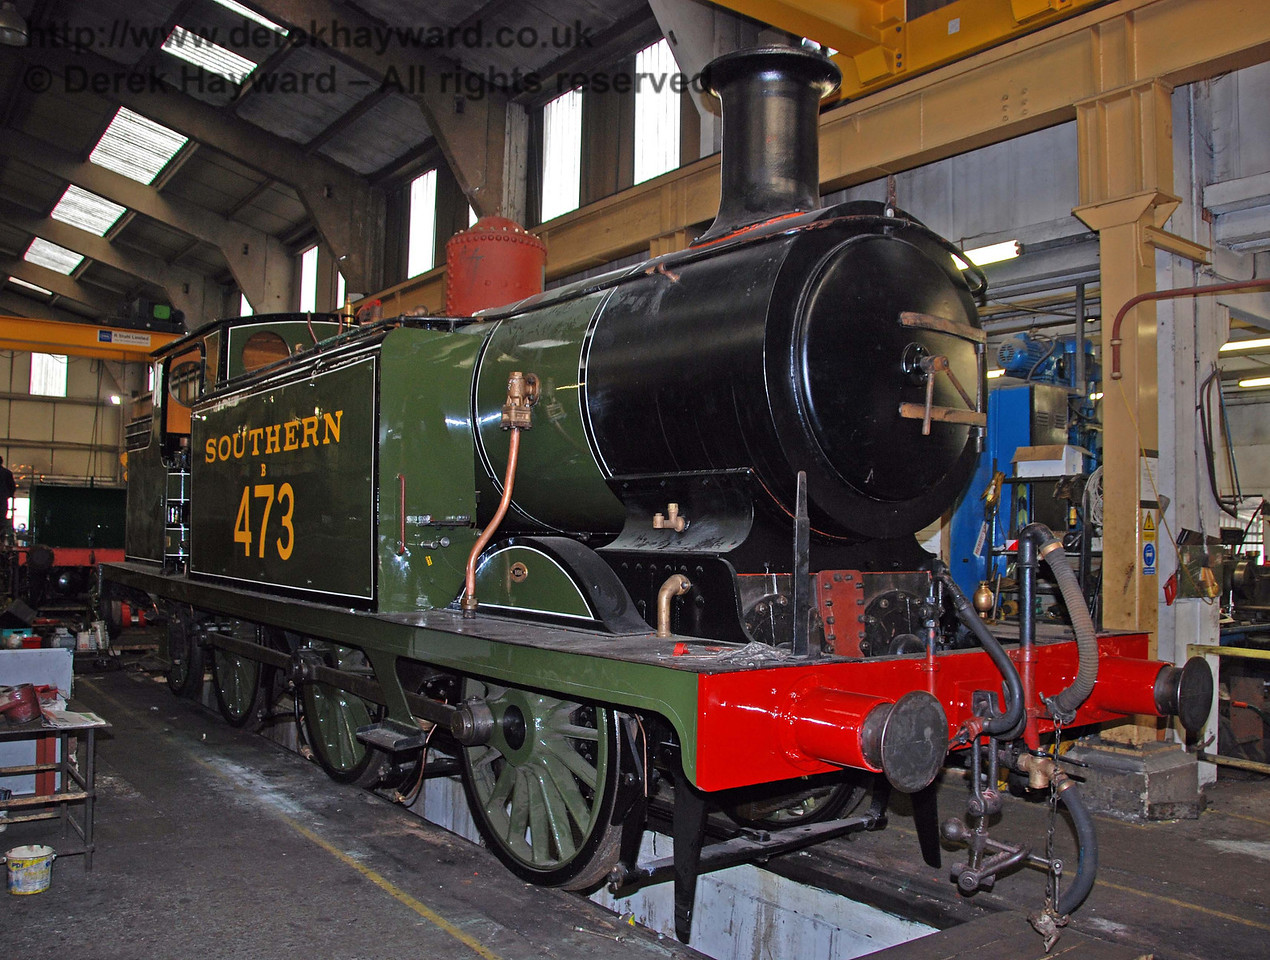 B473 in Sheffield Park Workshops 01.12.2009.  Work on this engine is not yet finished.